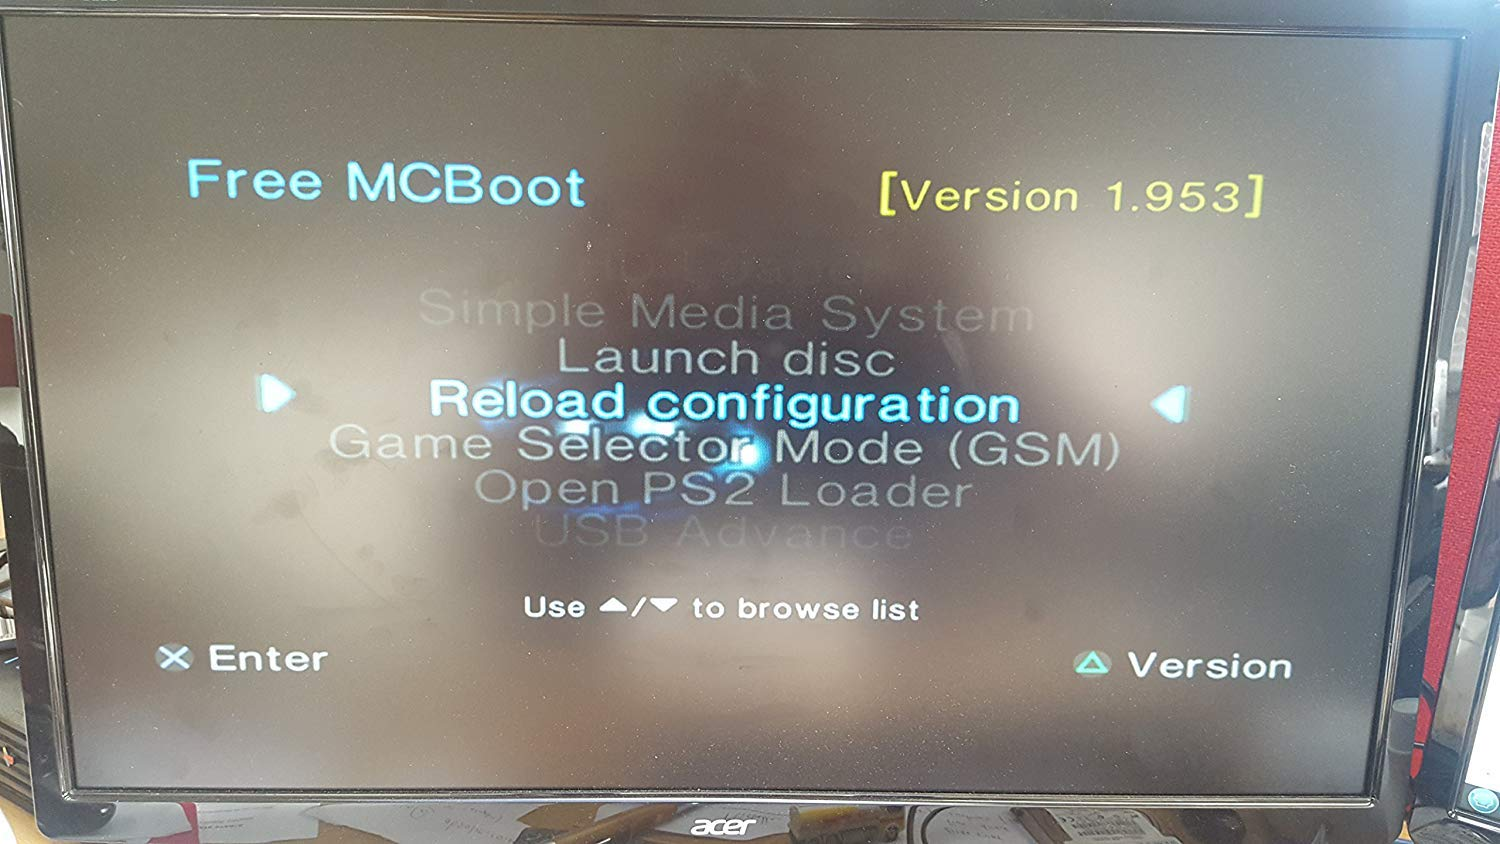 Sony Playstation 2 McBoot FMCB 1 953 PS2 Memory Card 8MB